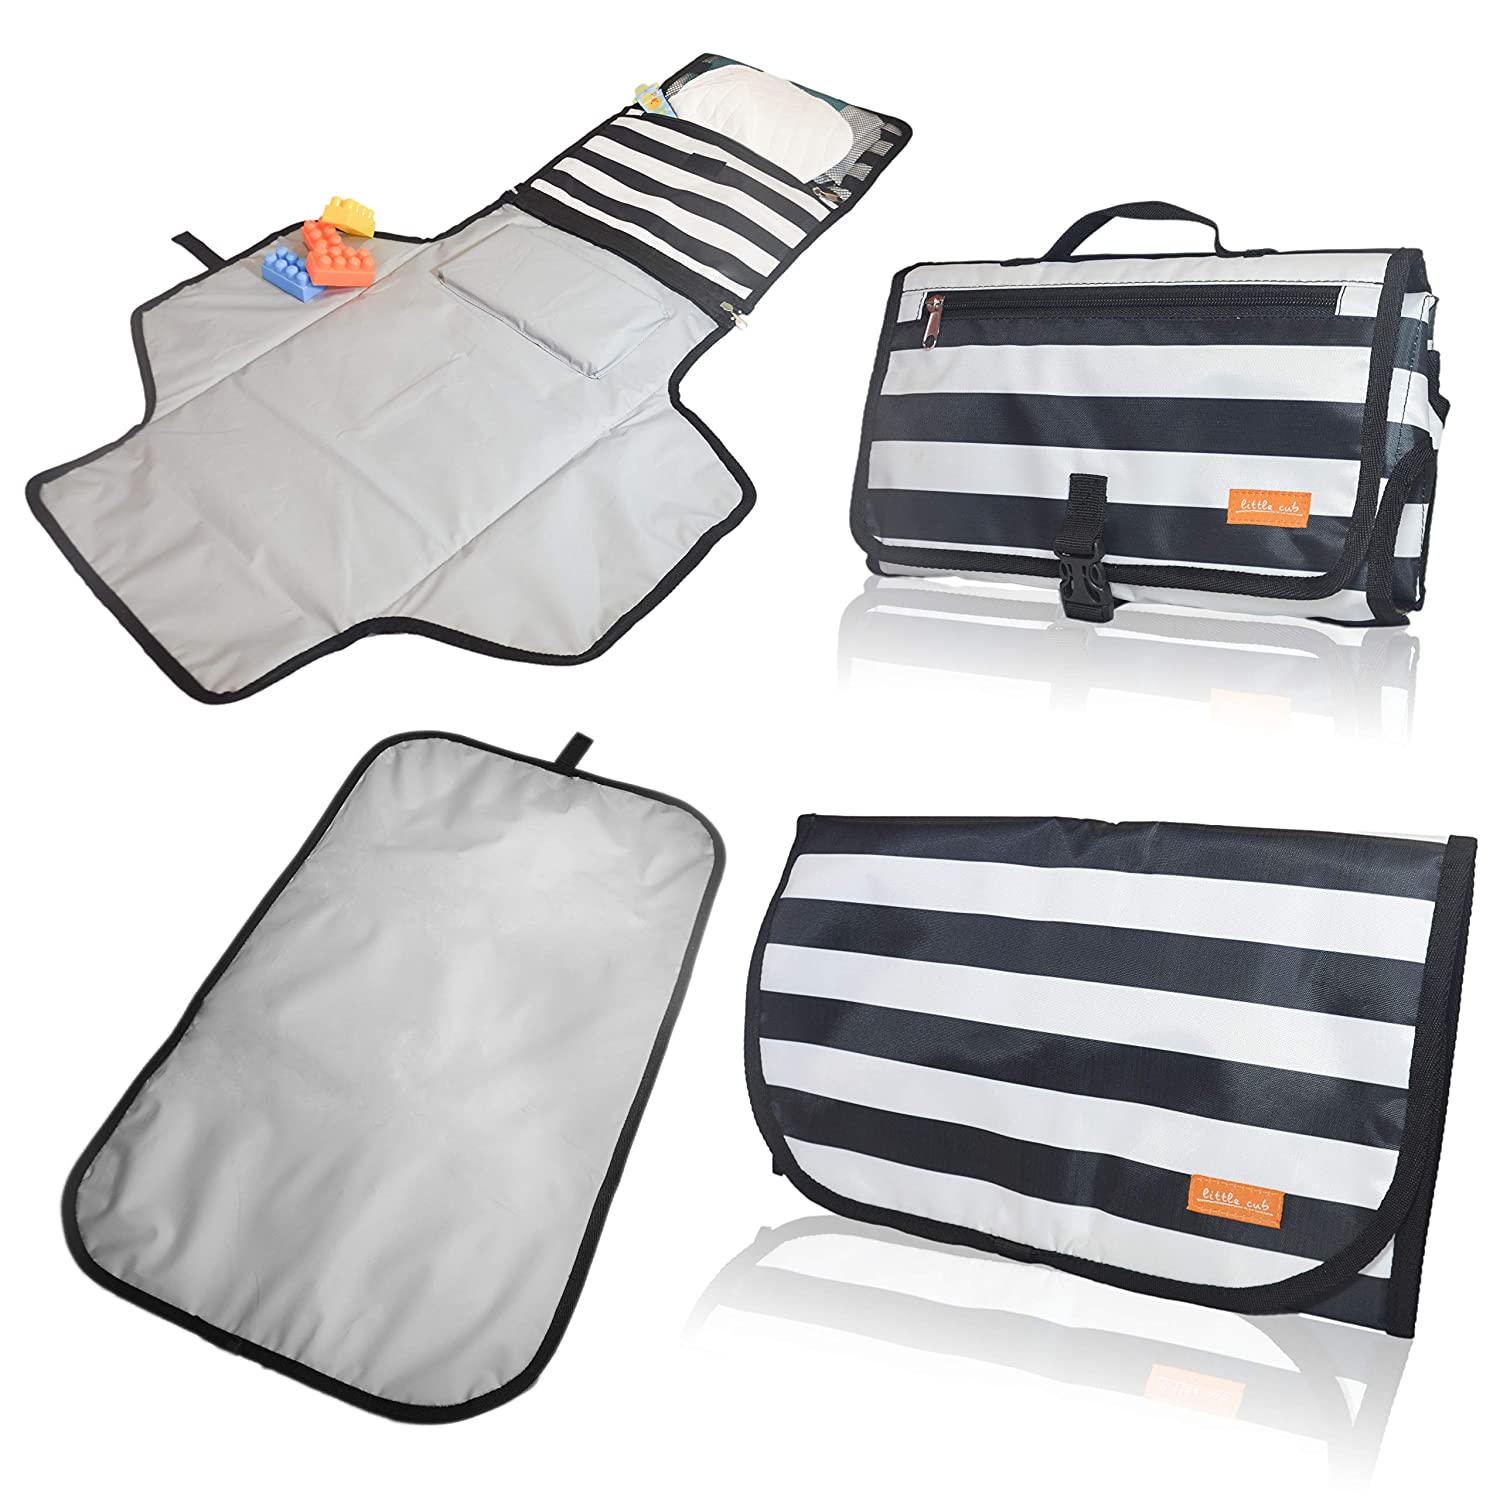 Portable Diaper Changing Pad & Baby Changing Pad – 2 Foldable, Waterproof, Lightweight, Travel Size, and Wipeable Diaper Changing Mat. Includes Soft Head Pillow & Storage Pockets - for Infants & Baby Safari Production Group